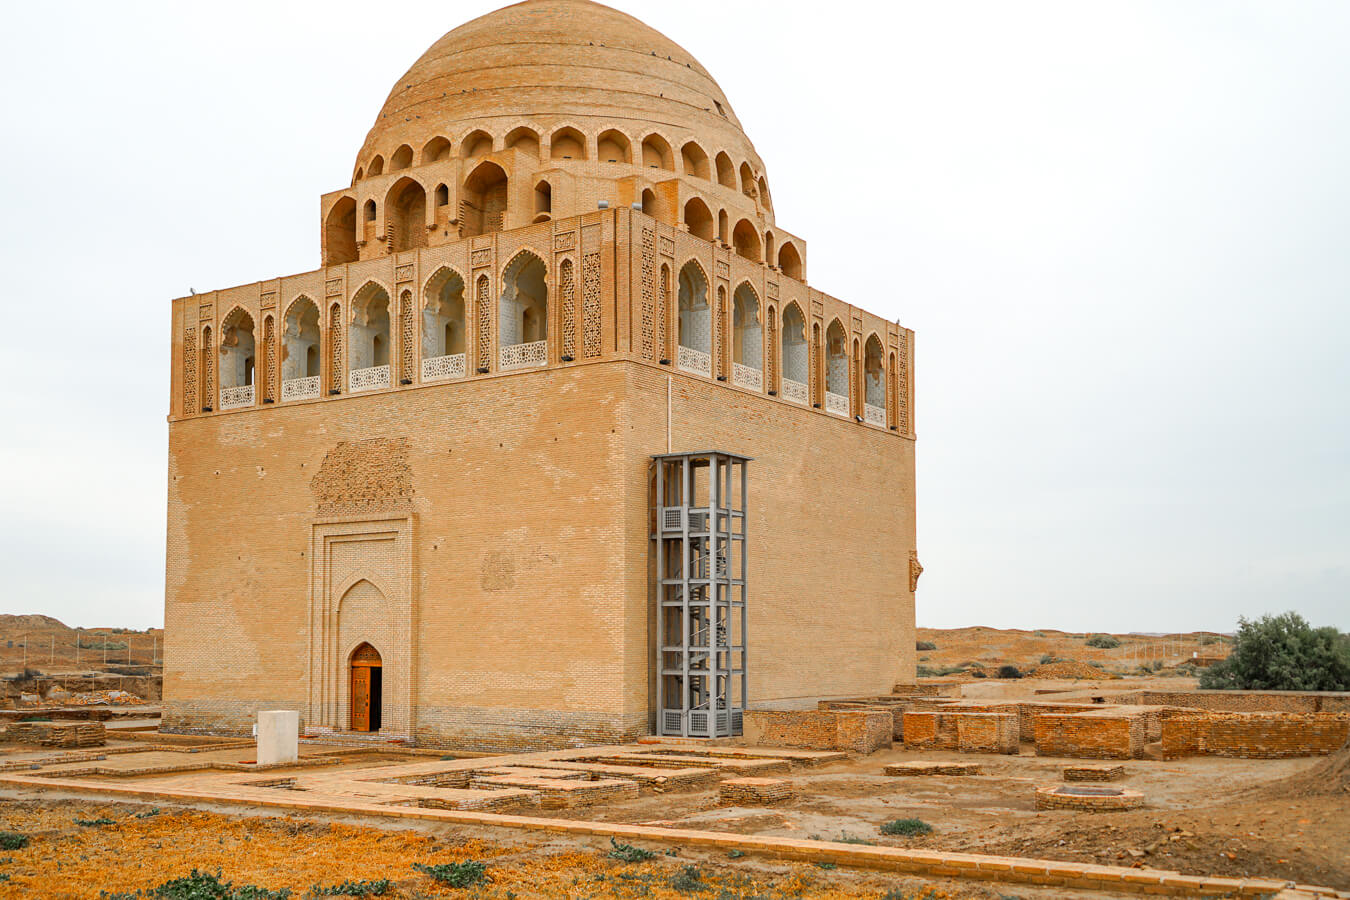 Merv mausoleum of Sultan Sanjar